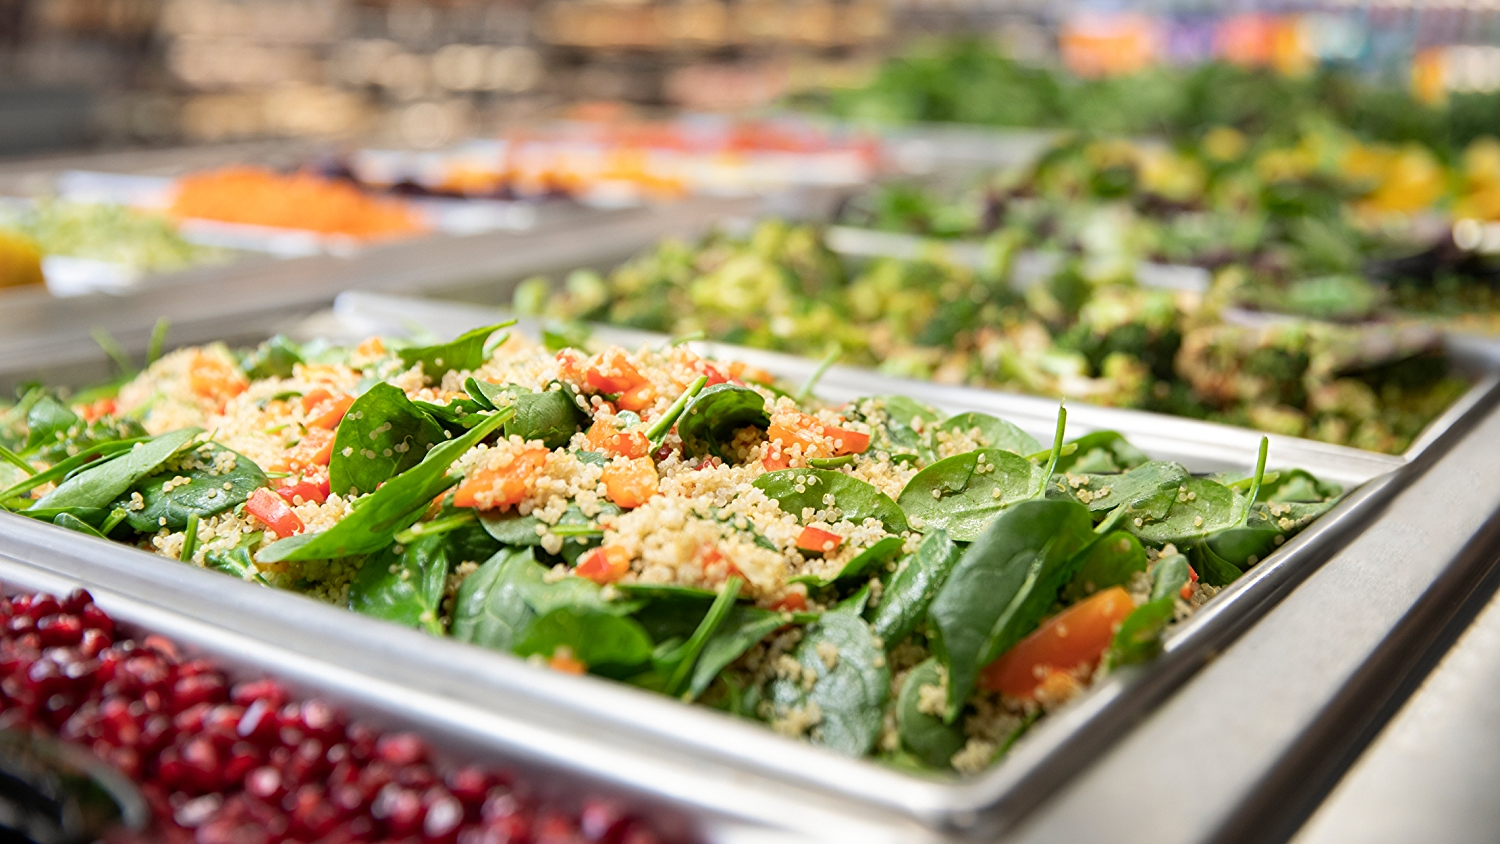 salad bar with spinach and couscous in focus